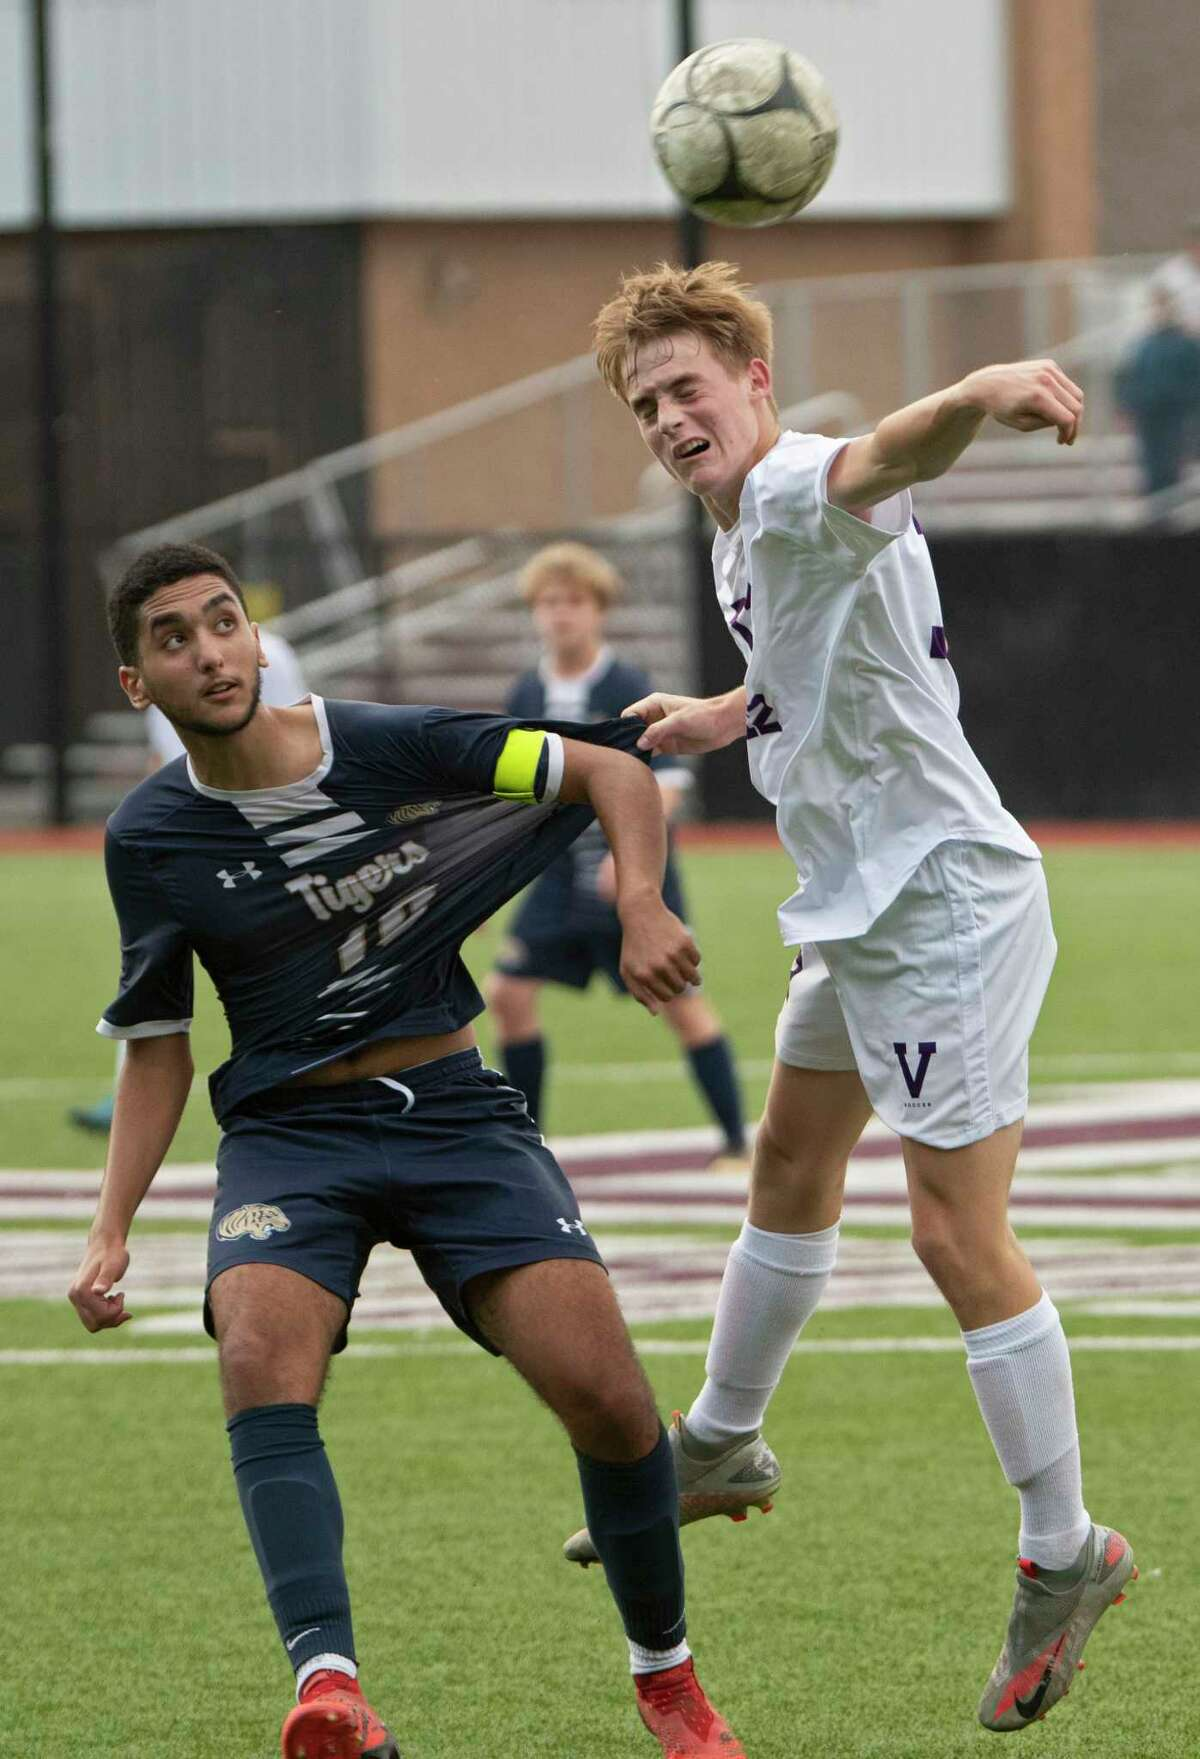 Cohoes' Jad Essoulaimani, left, battles for the ball with Voorheesville's Daniel Wittman during the Colonial Council tournament boys' soccer game on Wednesday, Oct, 13, 2021 in Troy, N.Y.